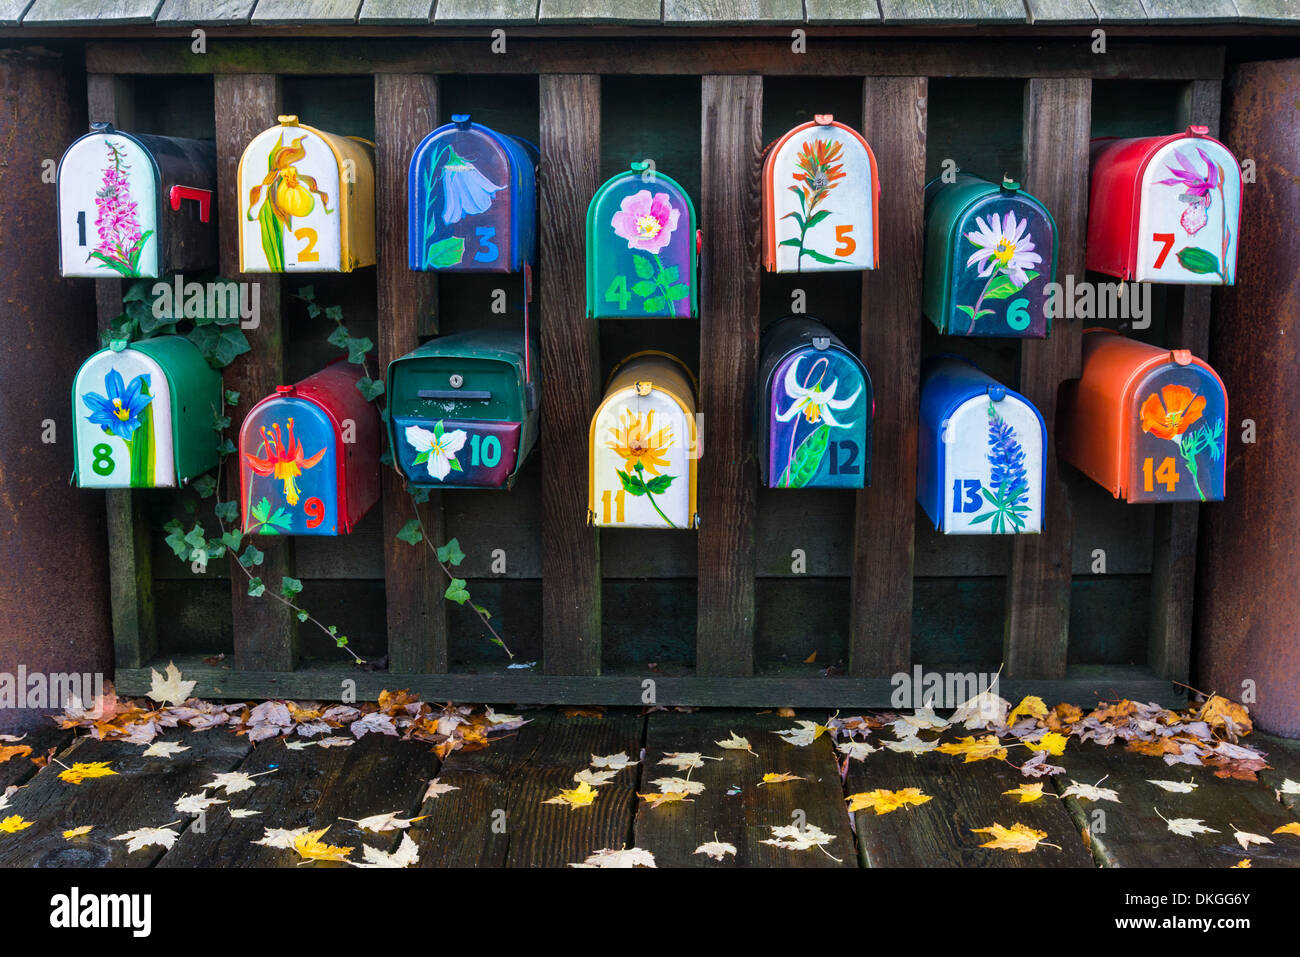 Painted mailboxes for houseboat residents, Granville Island, Vancouver, British Columbia, Canada - Stock Image